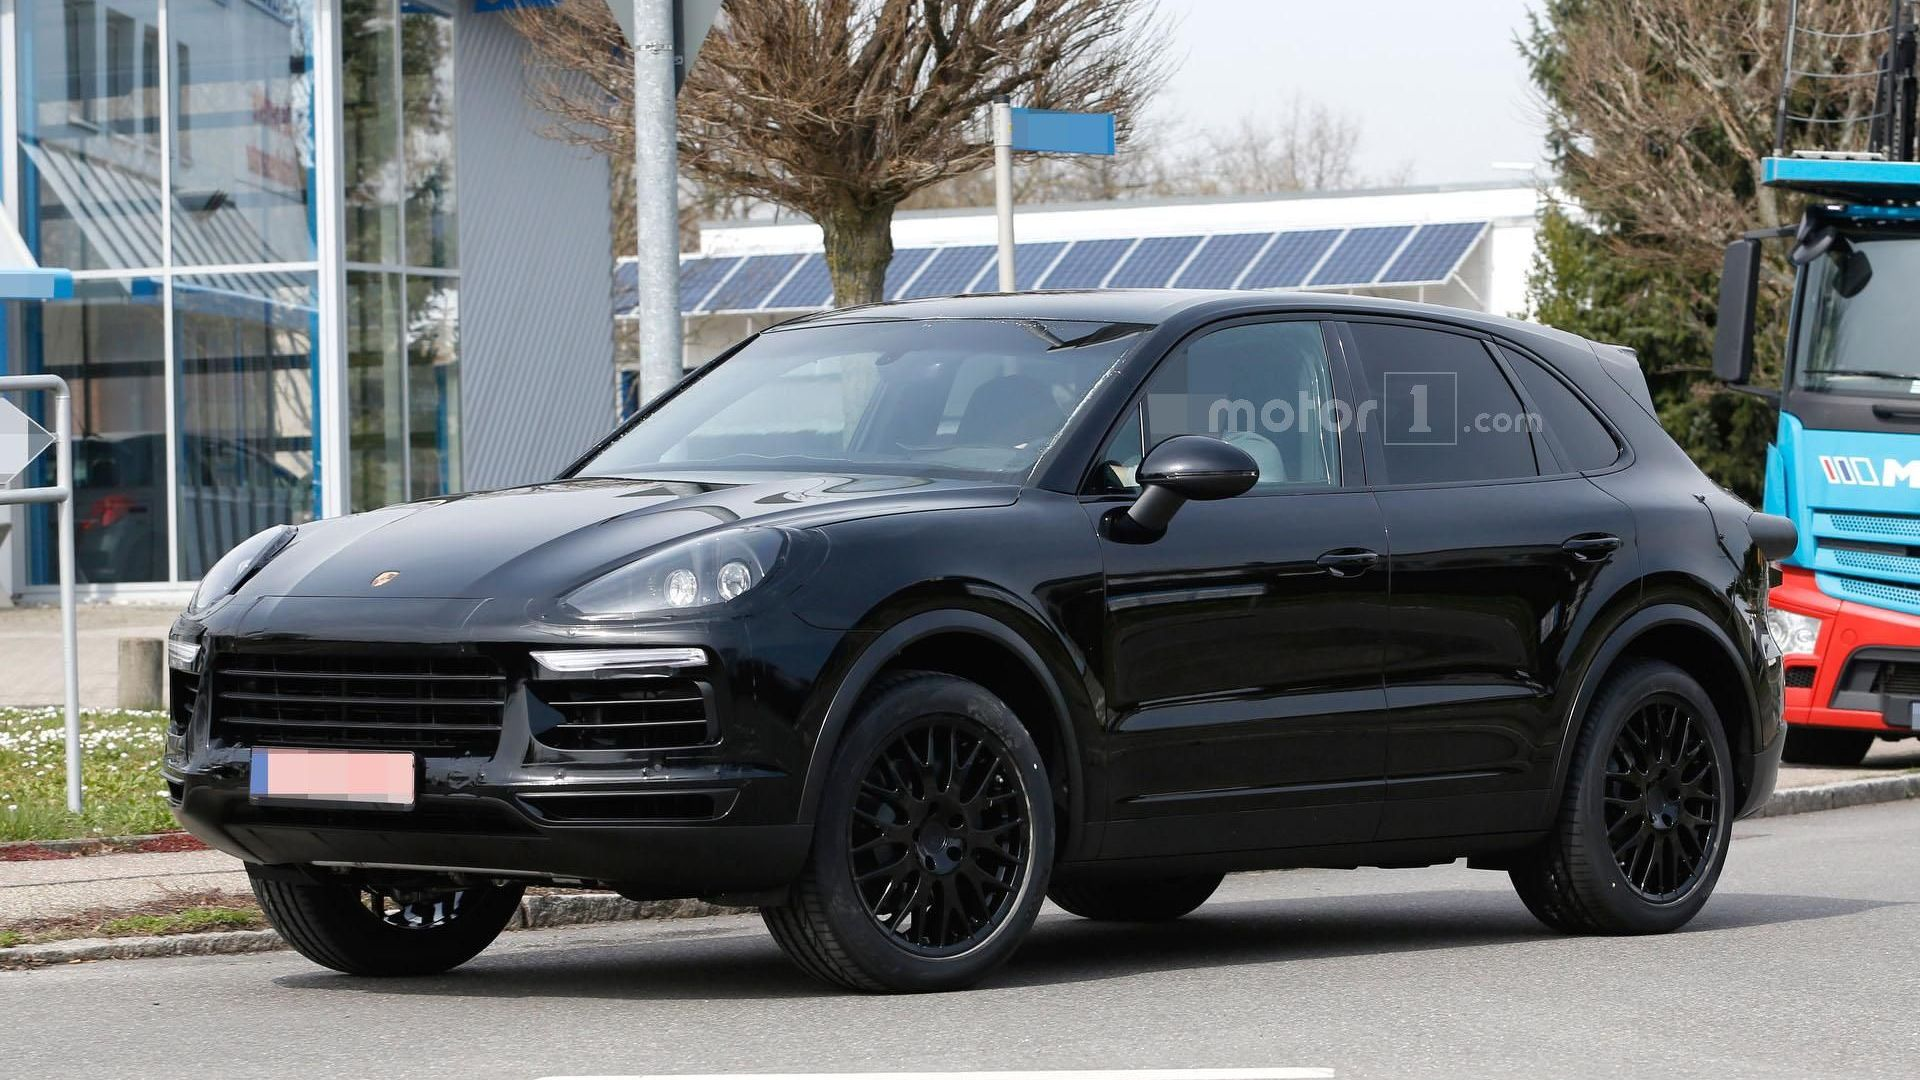 2018 Porsche Cayenne Spied In Germany Motor1 Com